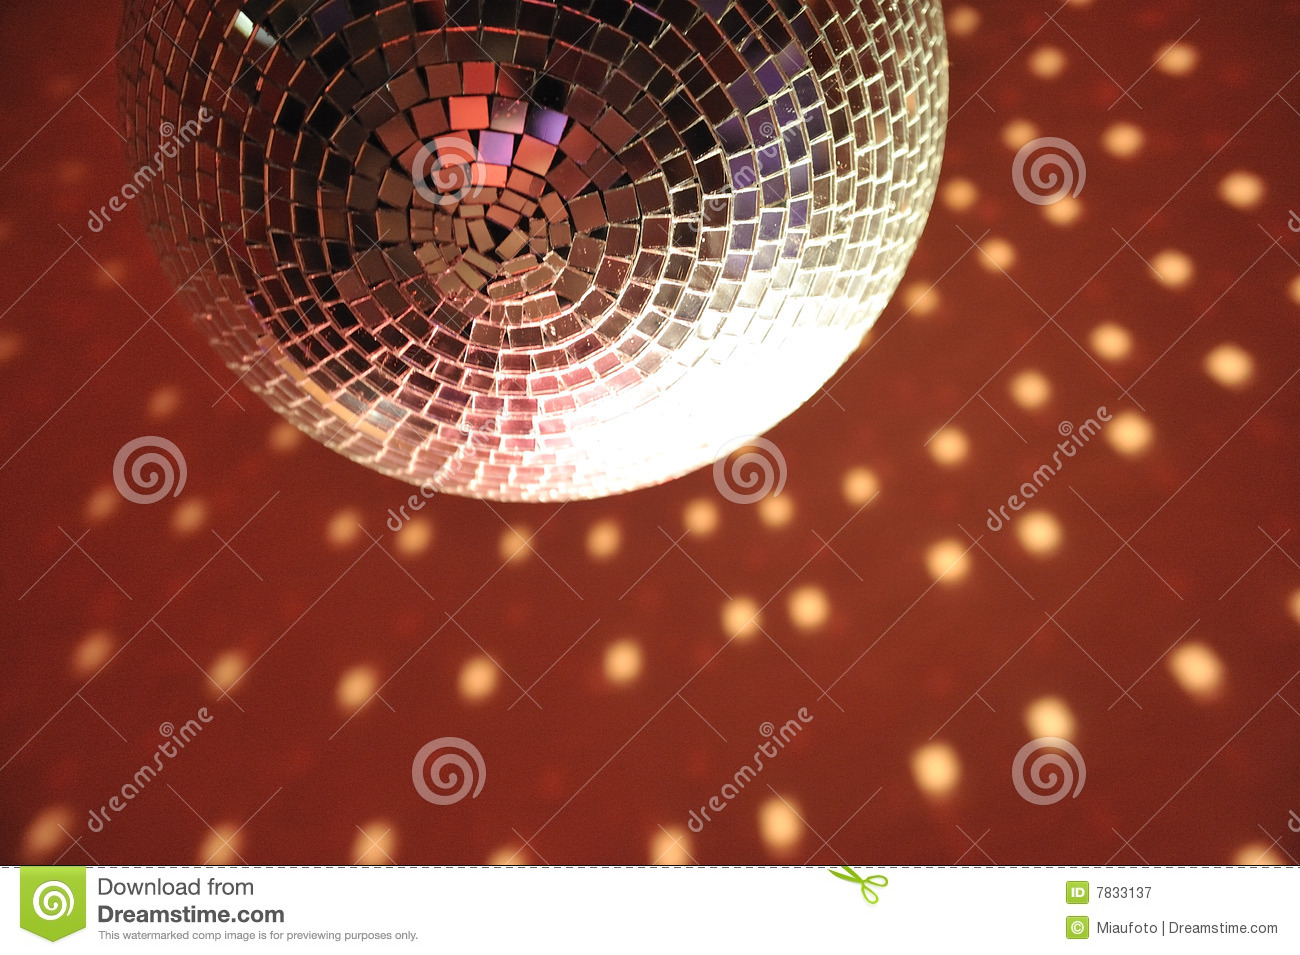 Discotheque light ball luminary on red ceiling